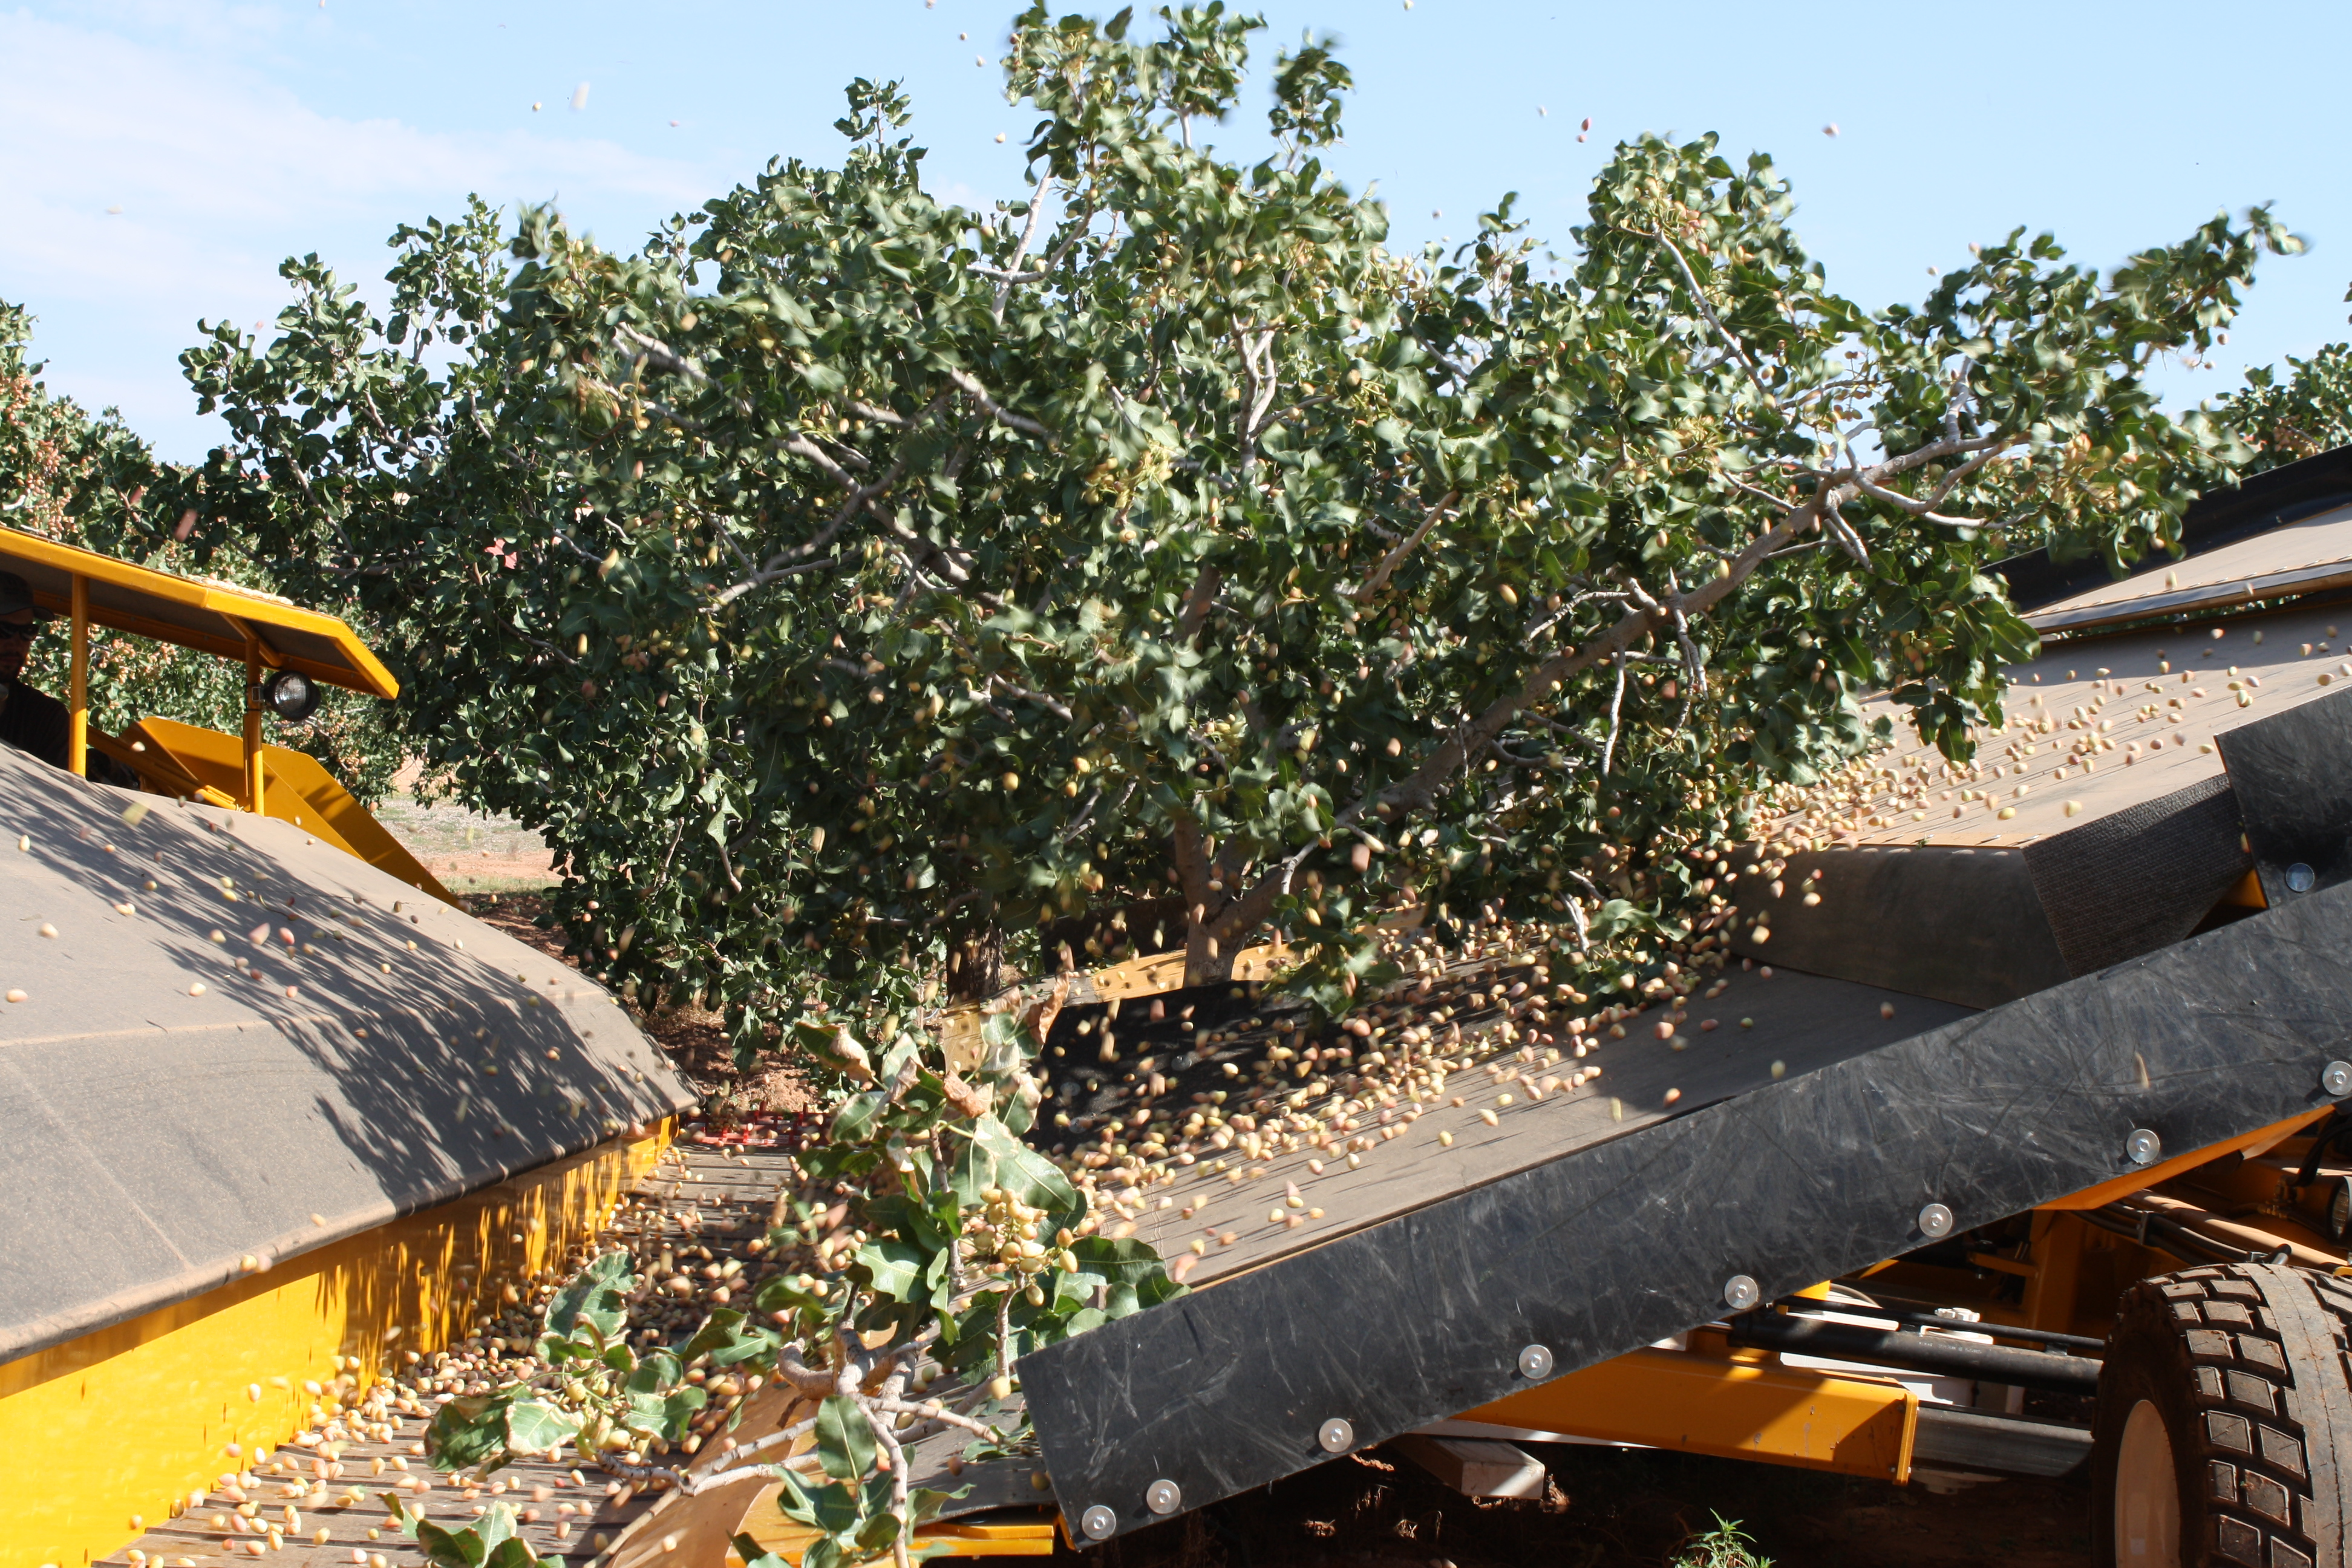 harvesting pistachio plants in New Mexico